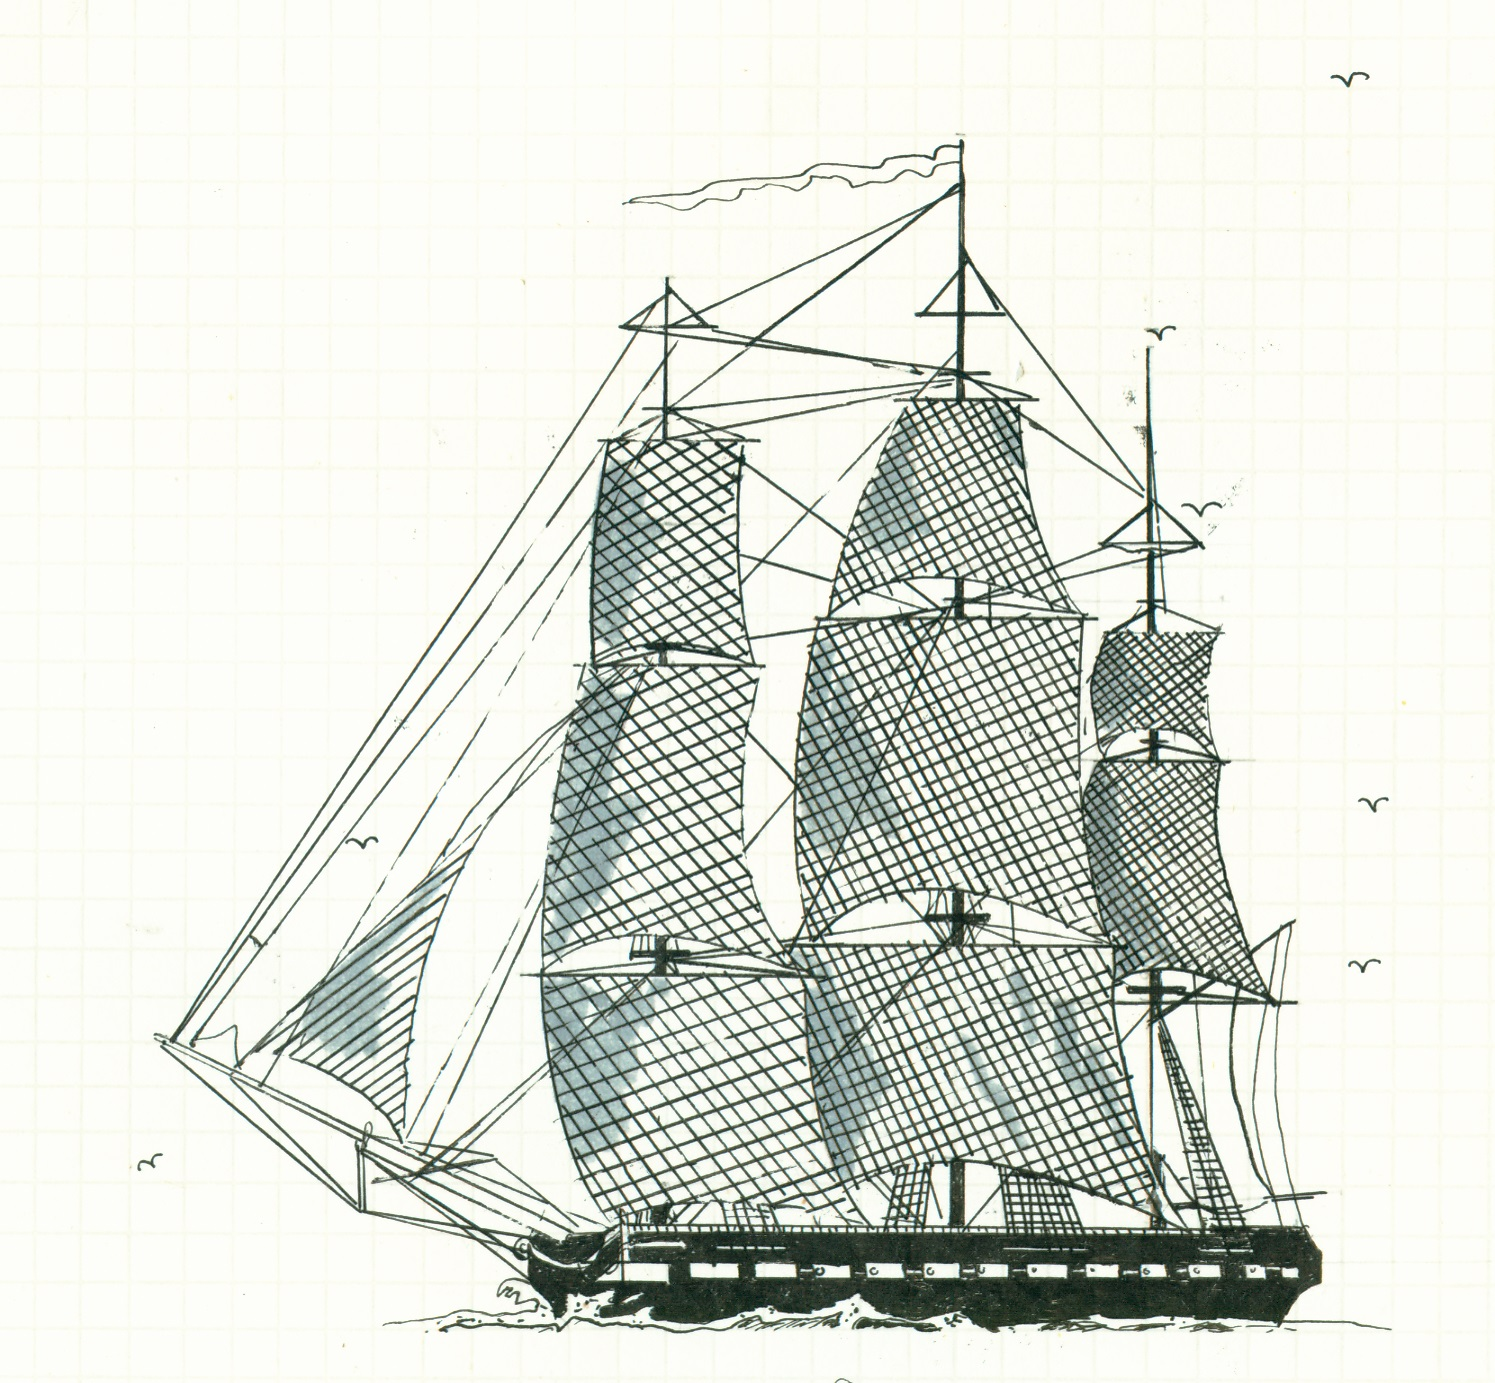 1495x1383 Warshipsresearch Greek Frigate Liberator 1826 And American